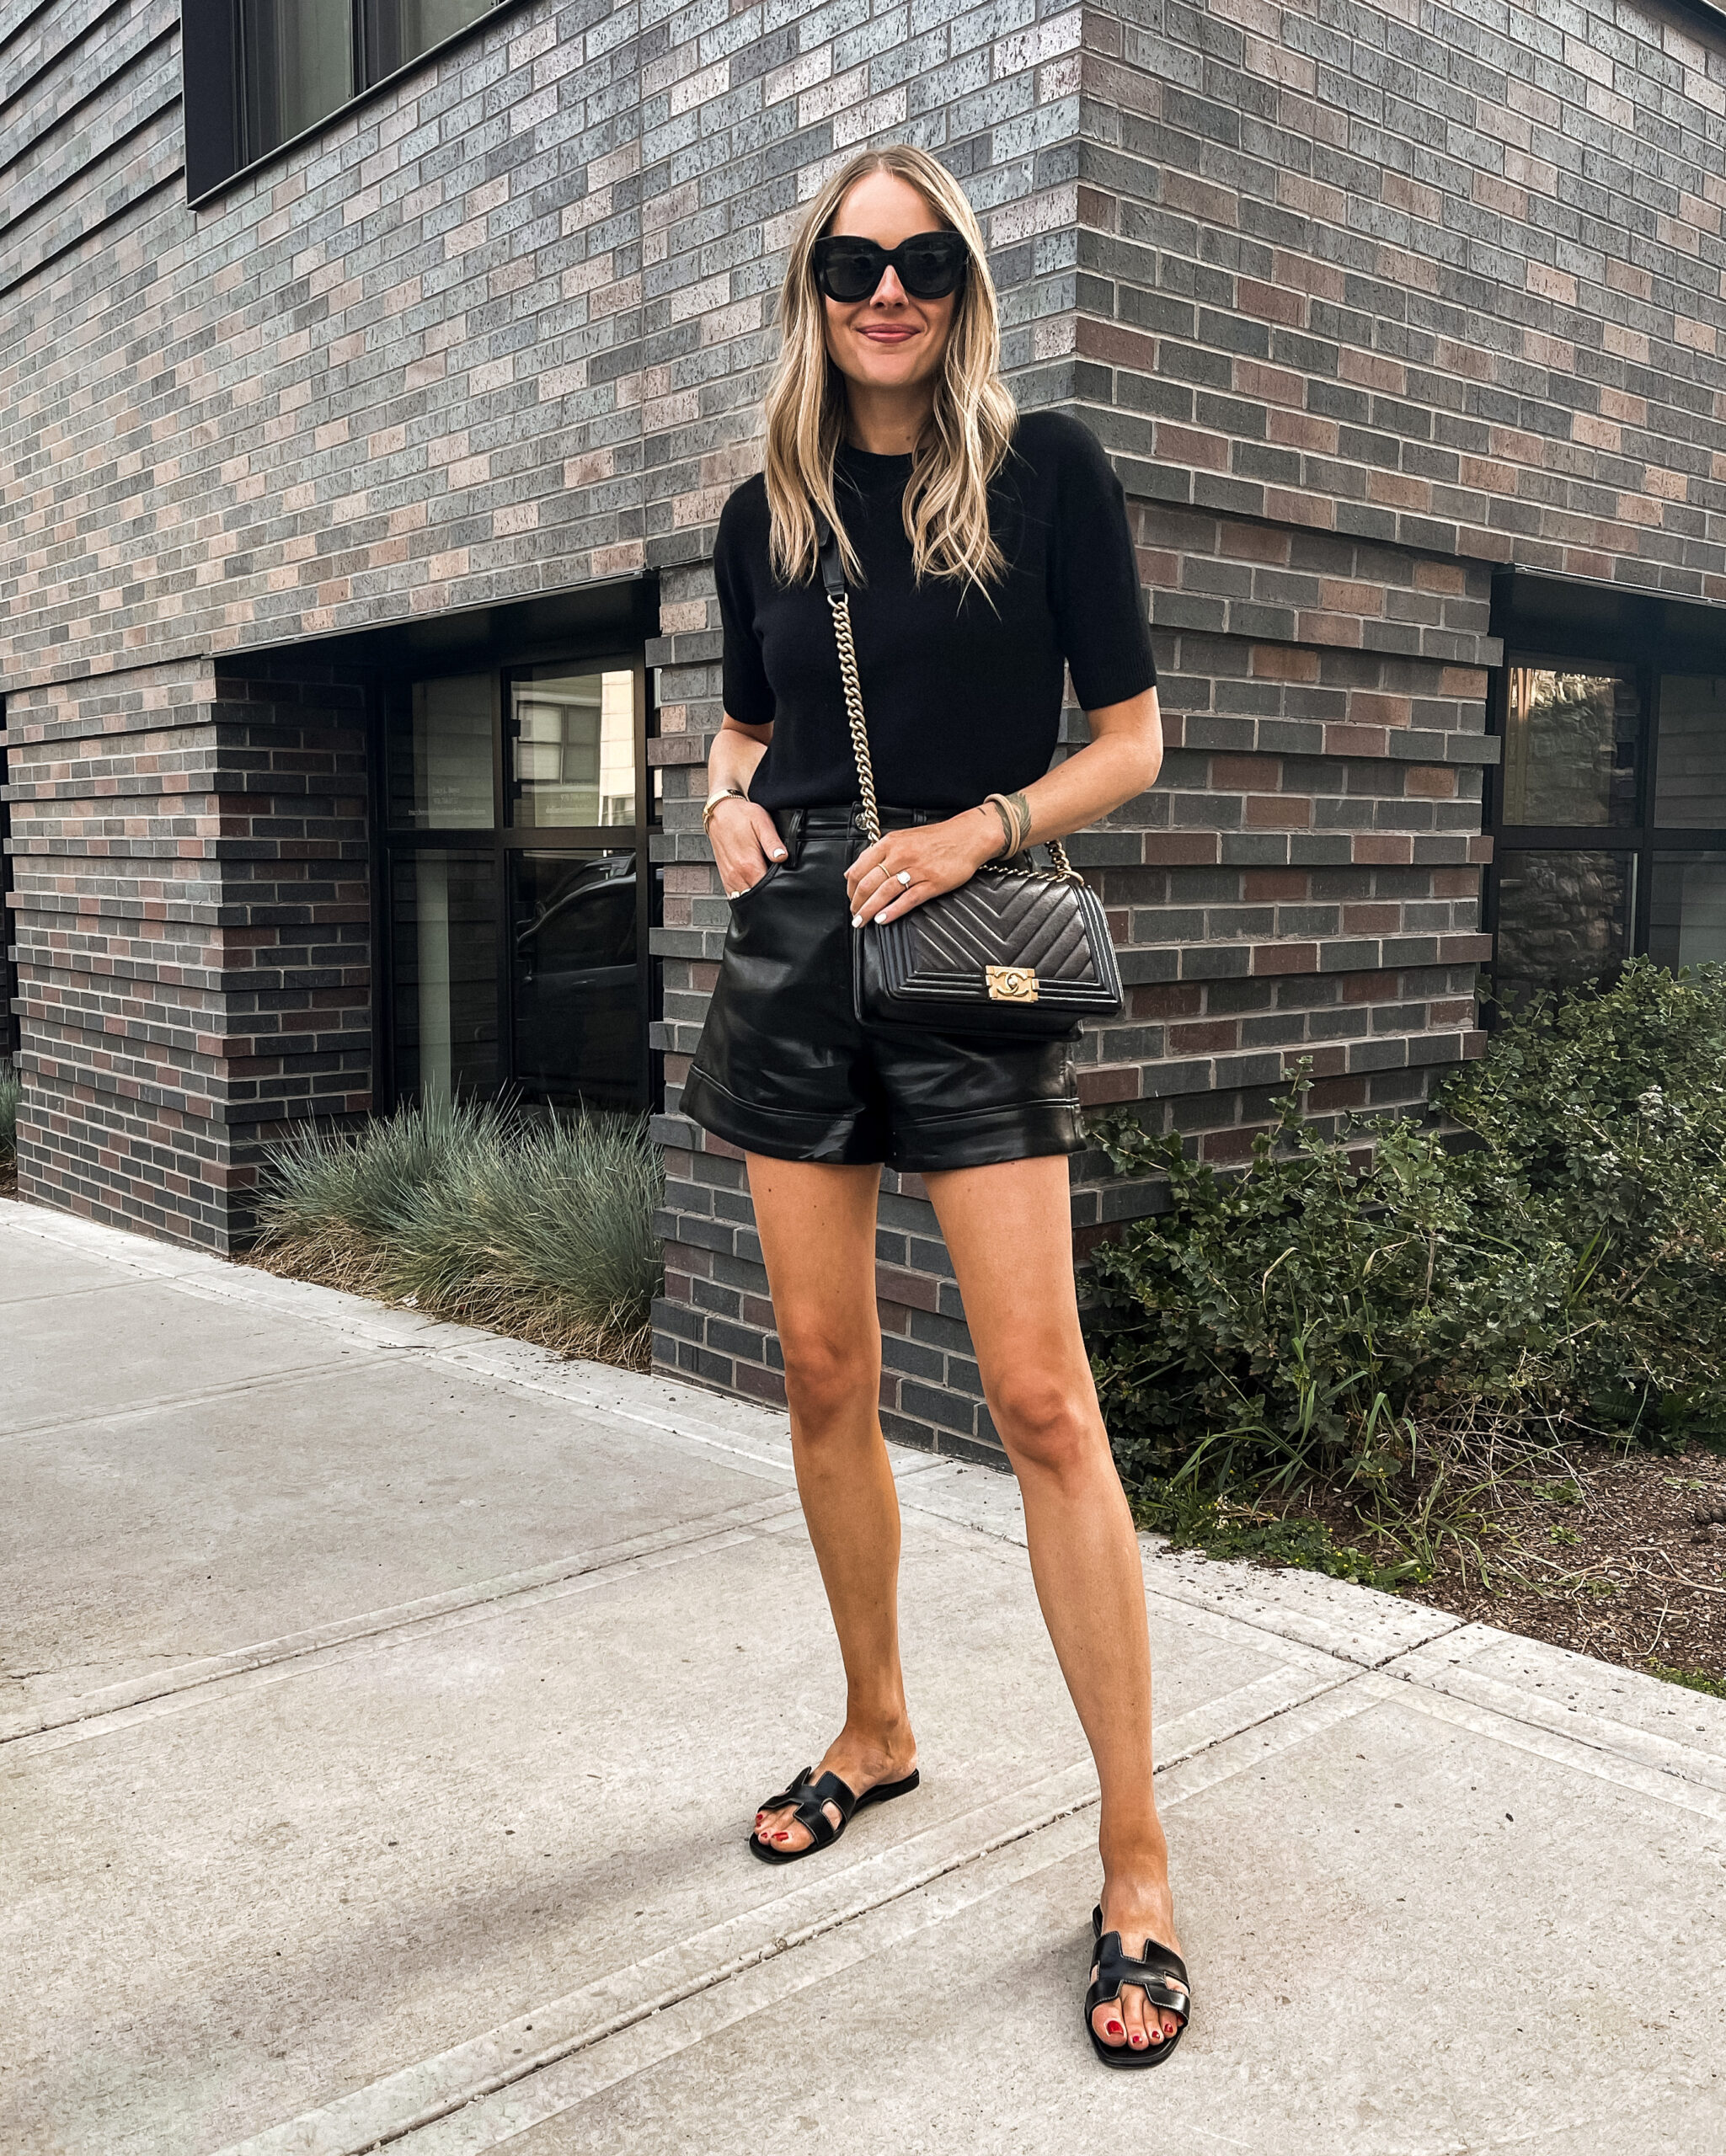 Fashion Jackson Wearing Theory Black Short Sleeve Cashmere Sweater AGOLDE Black Leather Shorts Hermes Oran Black Sandals Telluride Summer Outfit